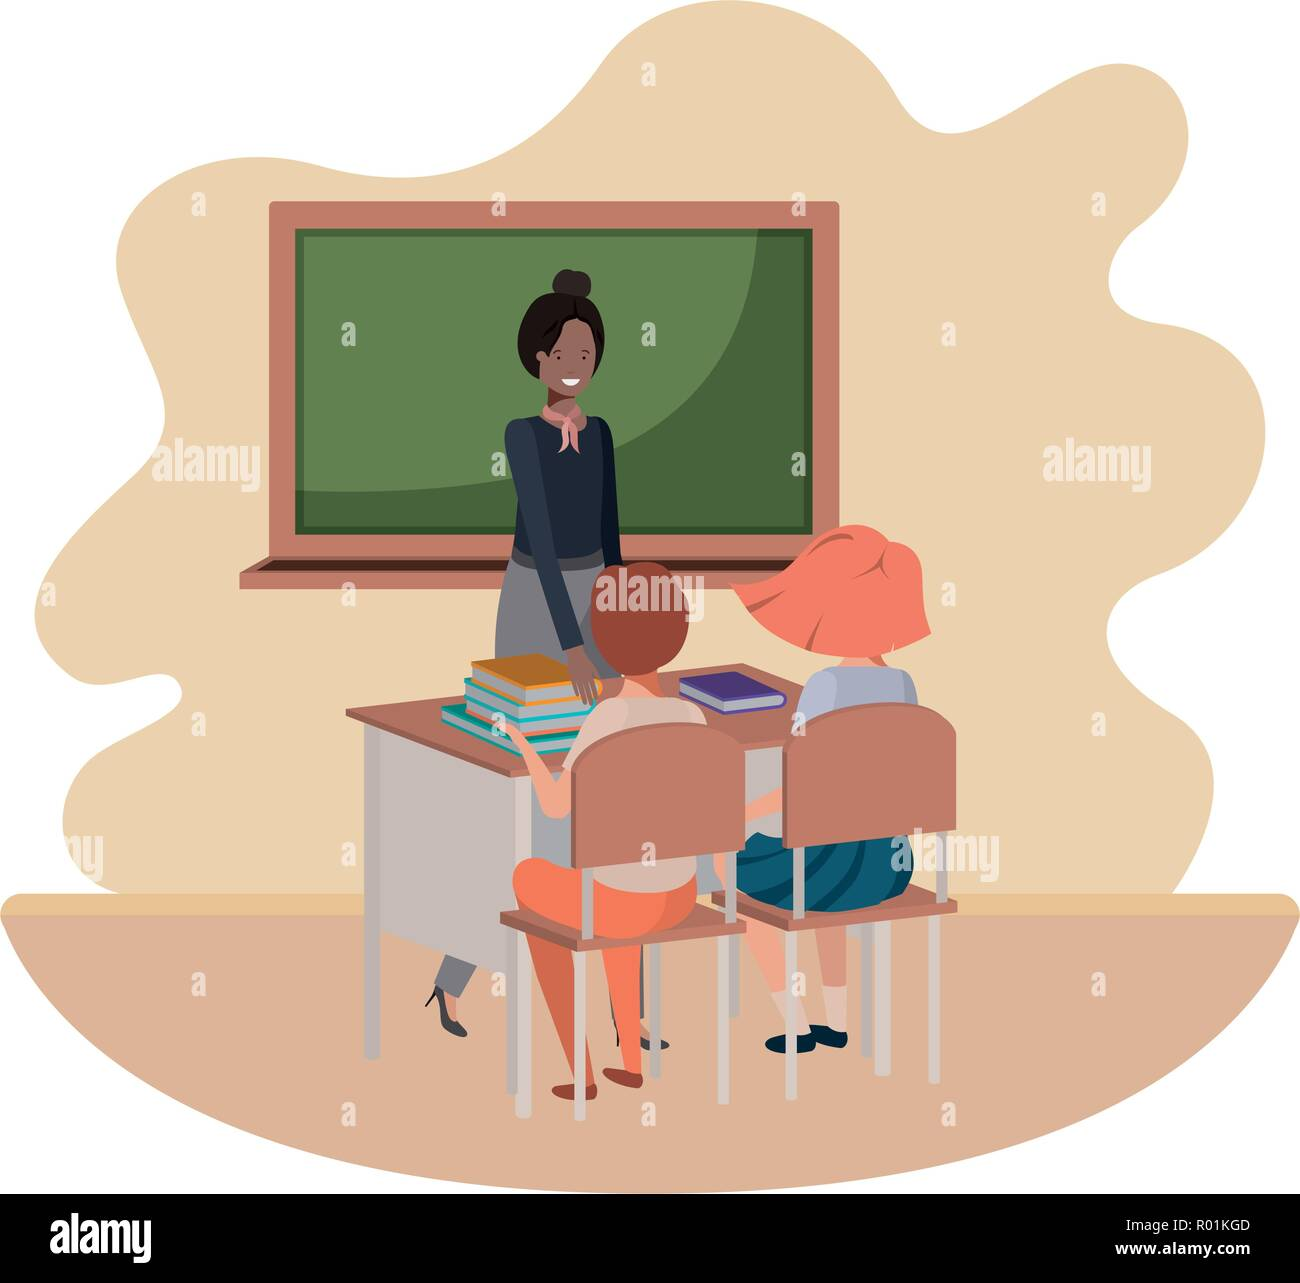 Teacher In The Classroom With Students Avatar Character Stock Vector Image Art Alamy